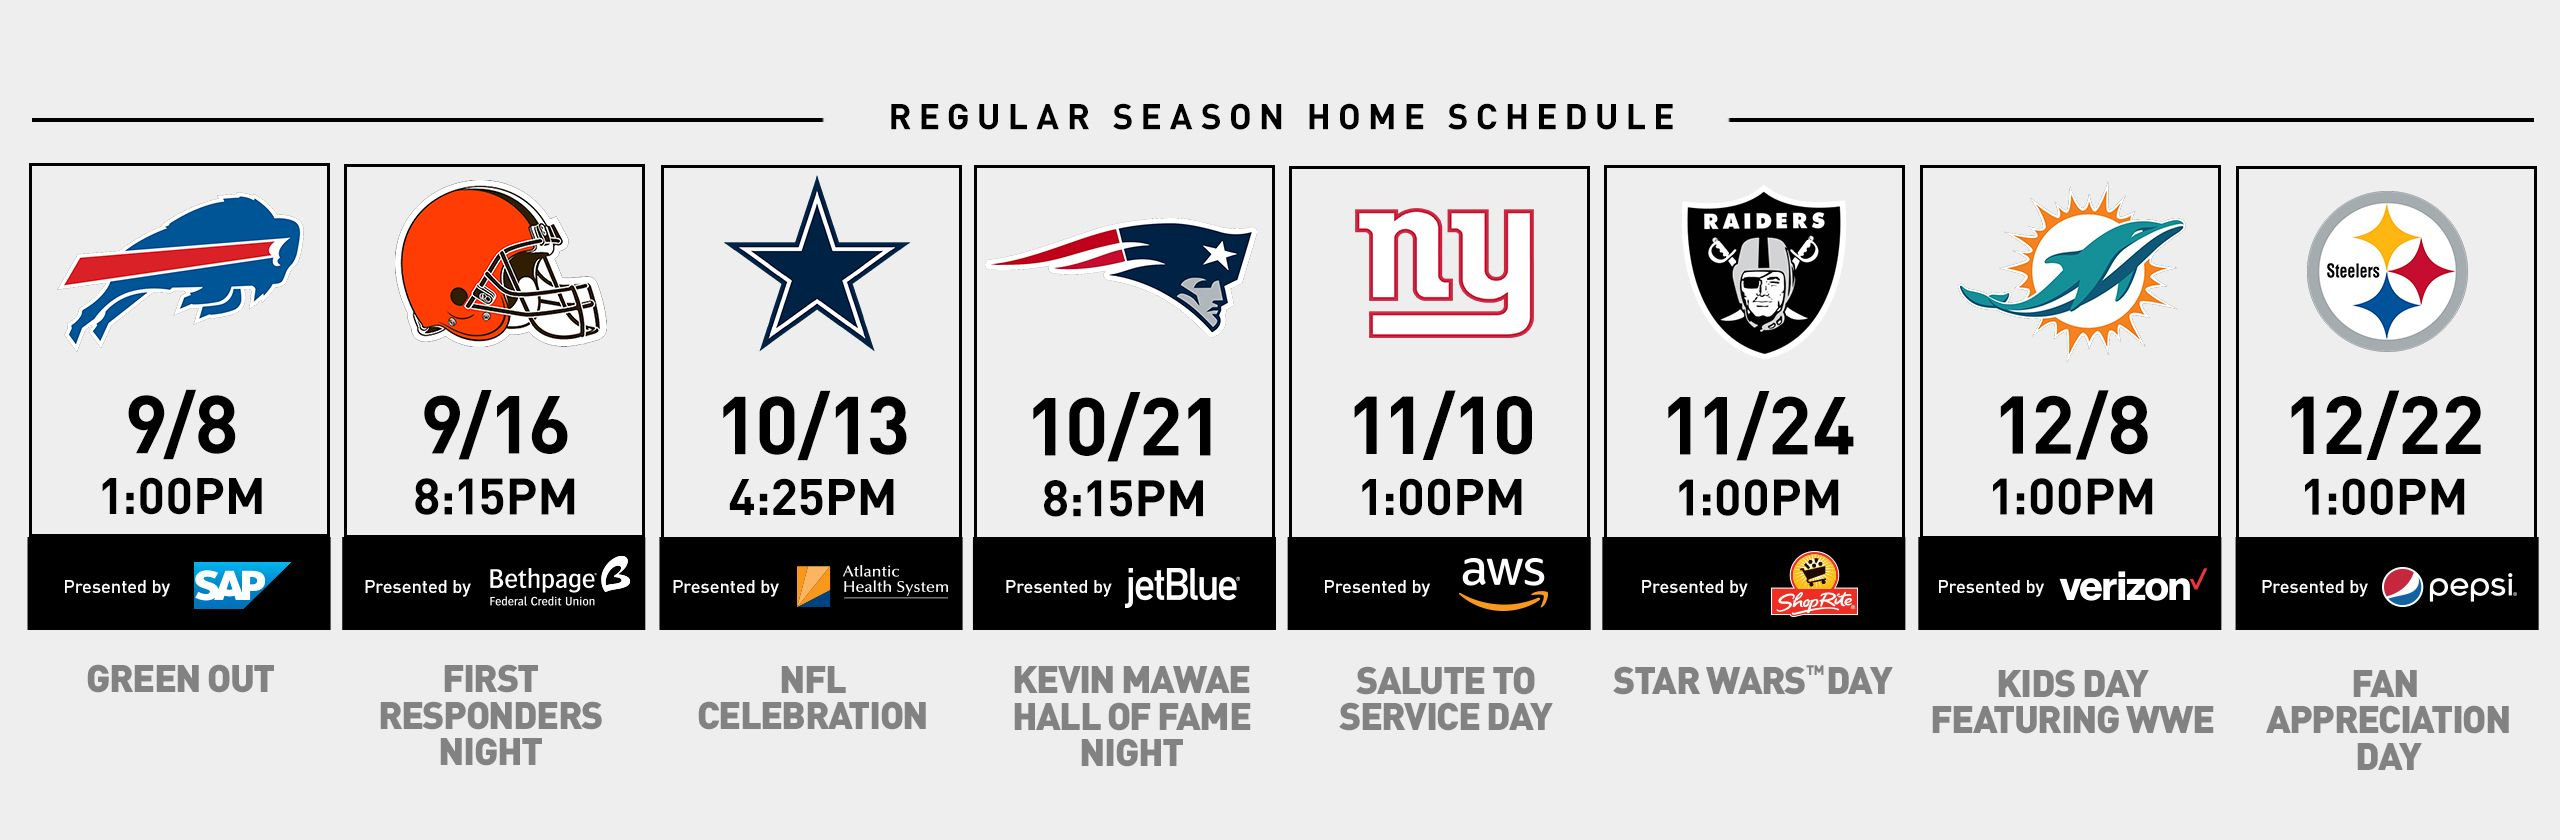 Regular-Season-Home-Schedule-with-Partners